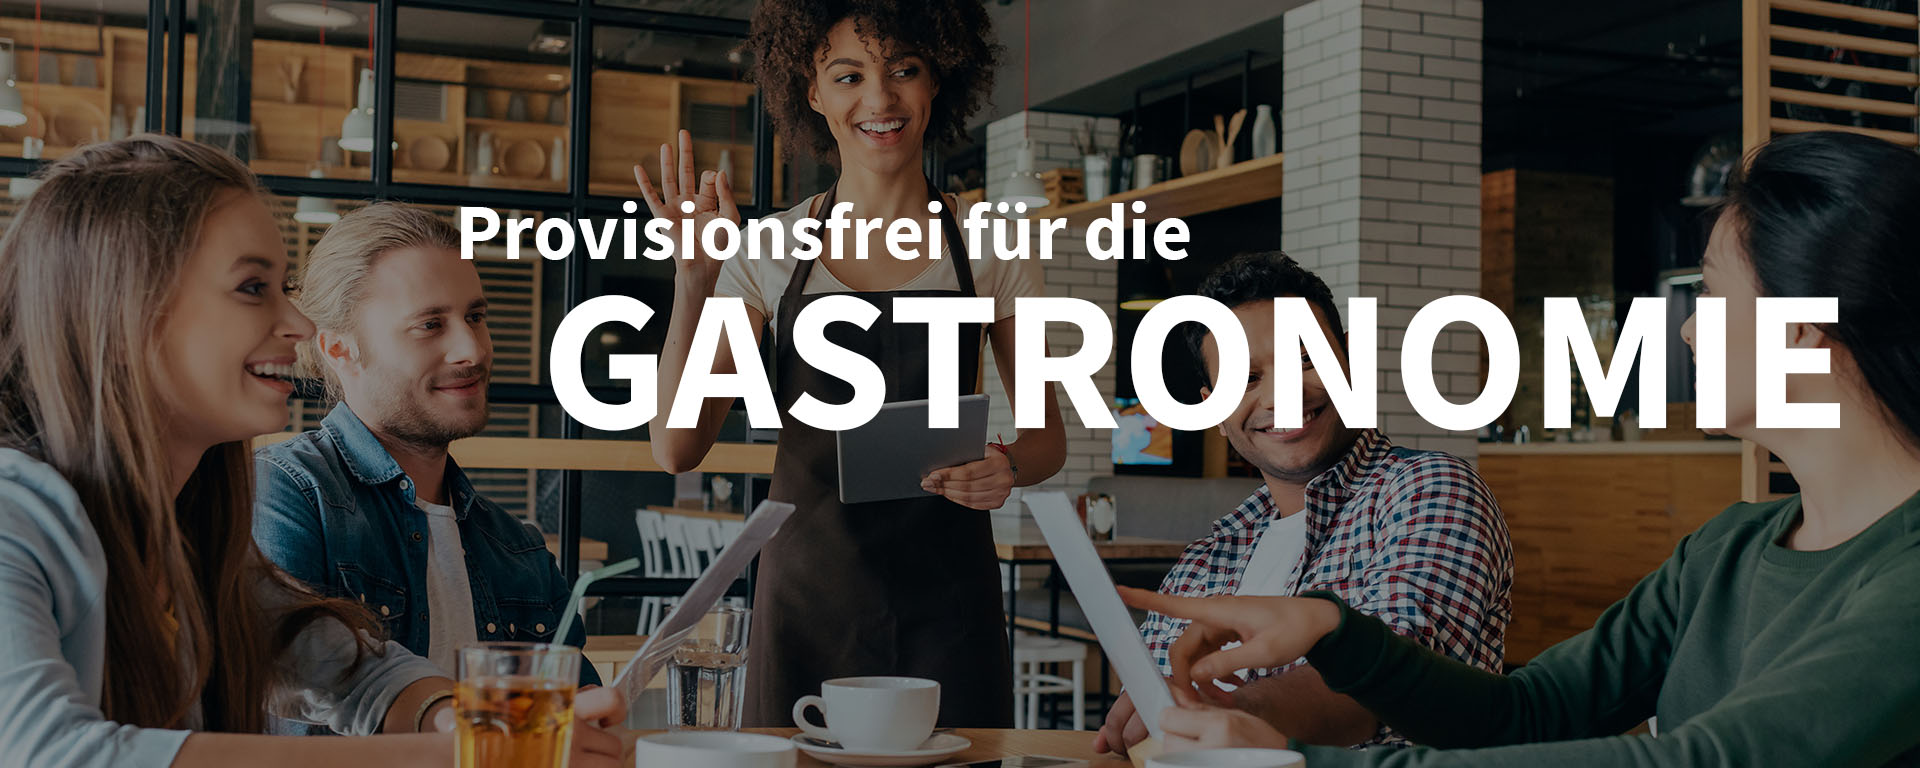 Restaurant Marketing, Gastronomie Marketing, Tourismus Marketing, Gastro Marketing, Mehr Gäste